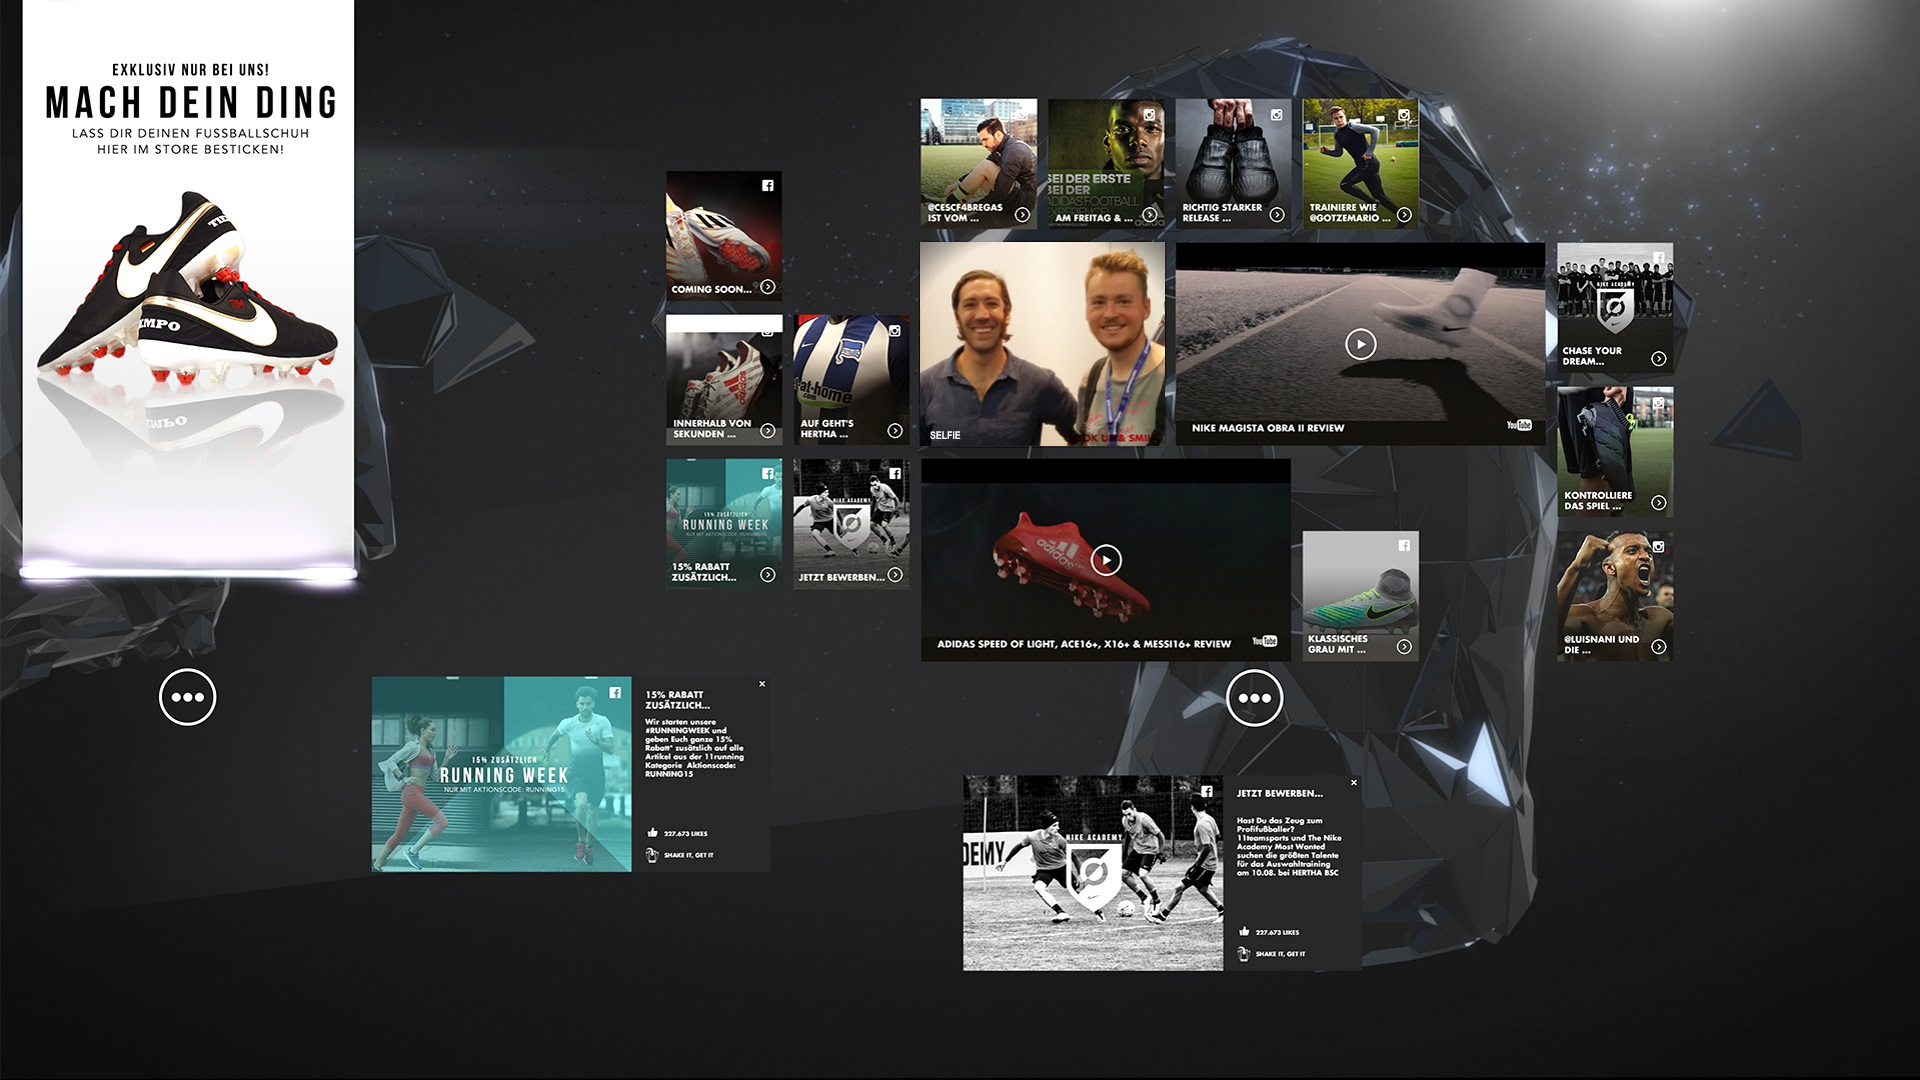 nike digital retail experience unity social media wall mit facebook und twitter news